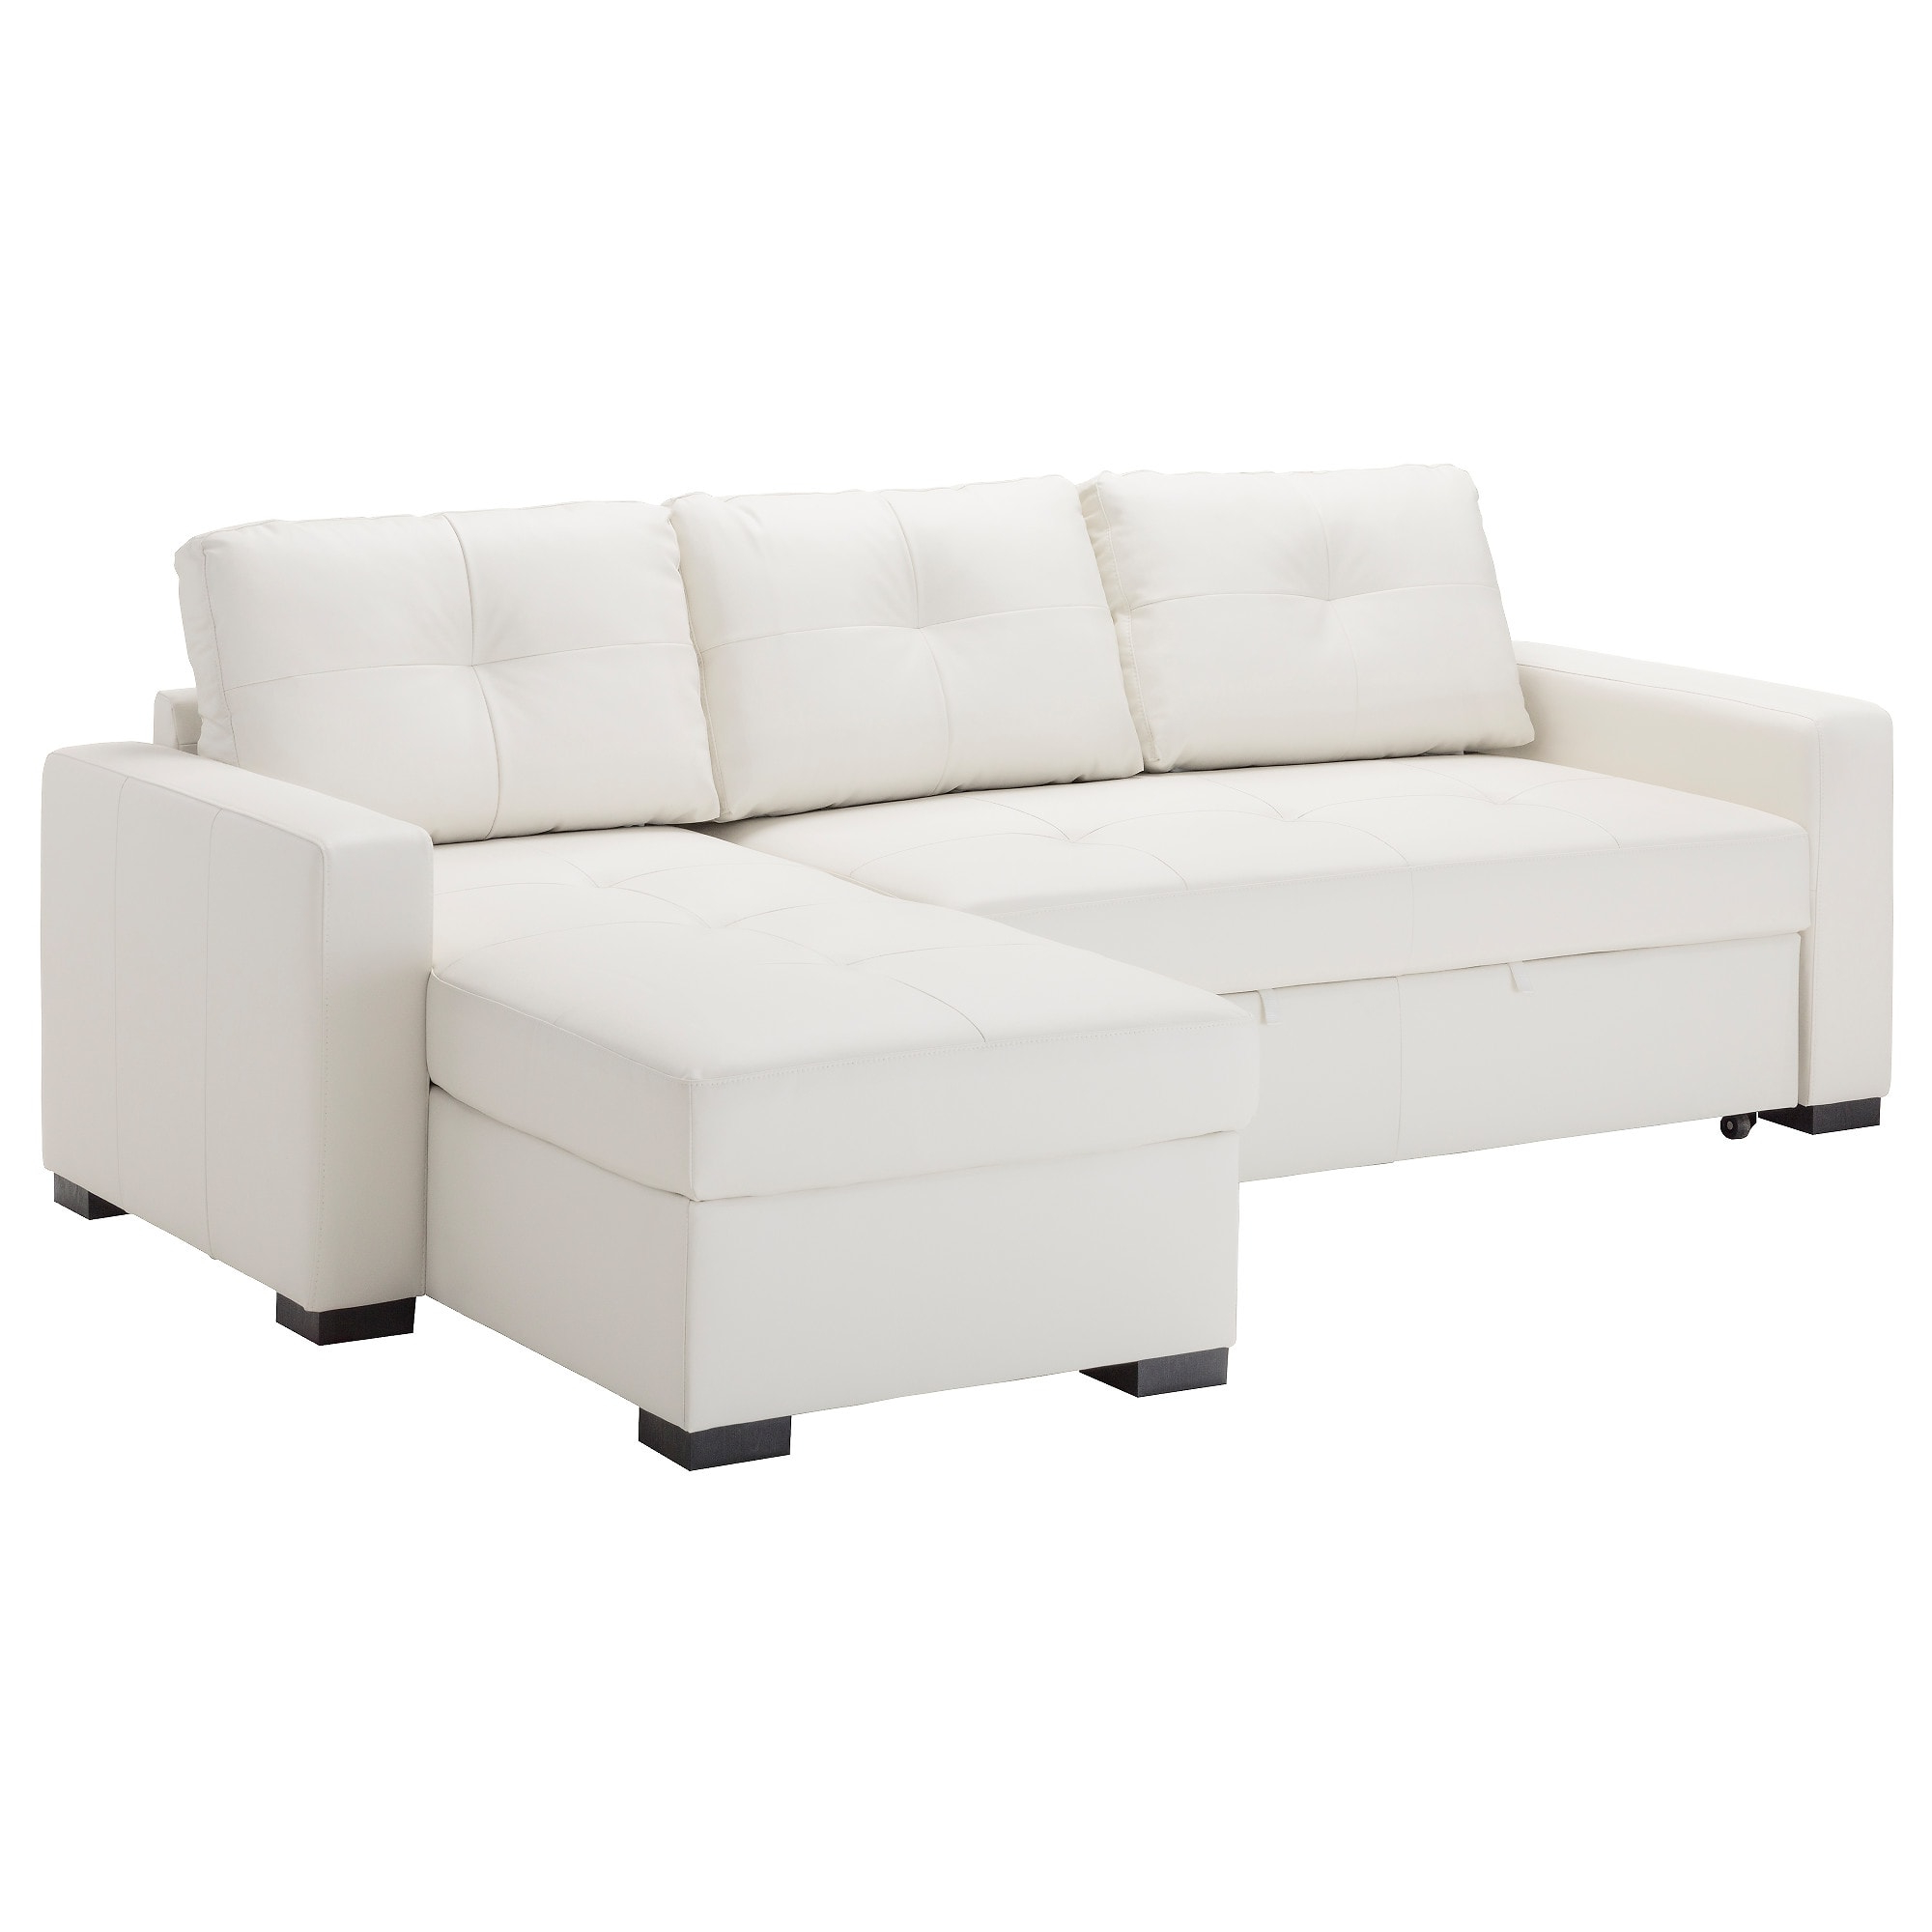 Sofas Cama 9ddf Ragunda Corner sofa Bed with Storage Kimstad Off White Ikea